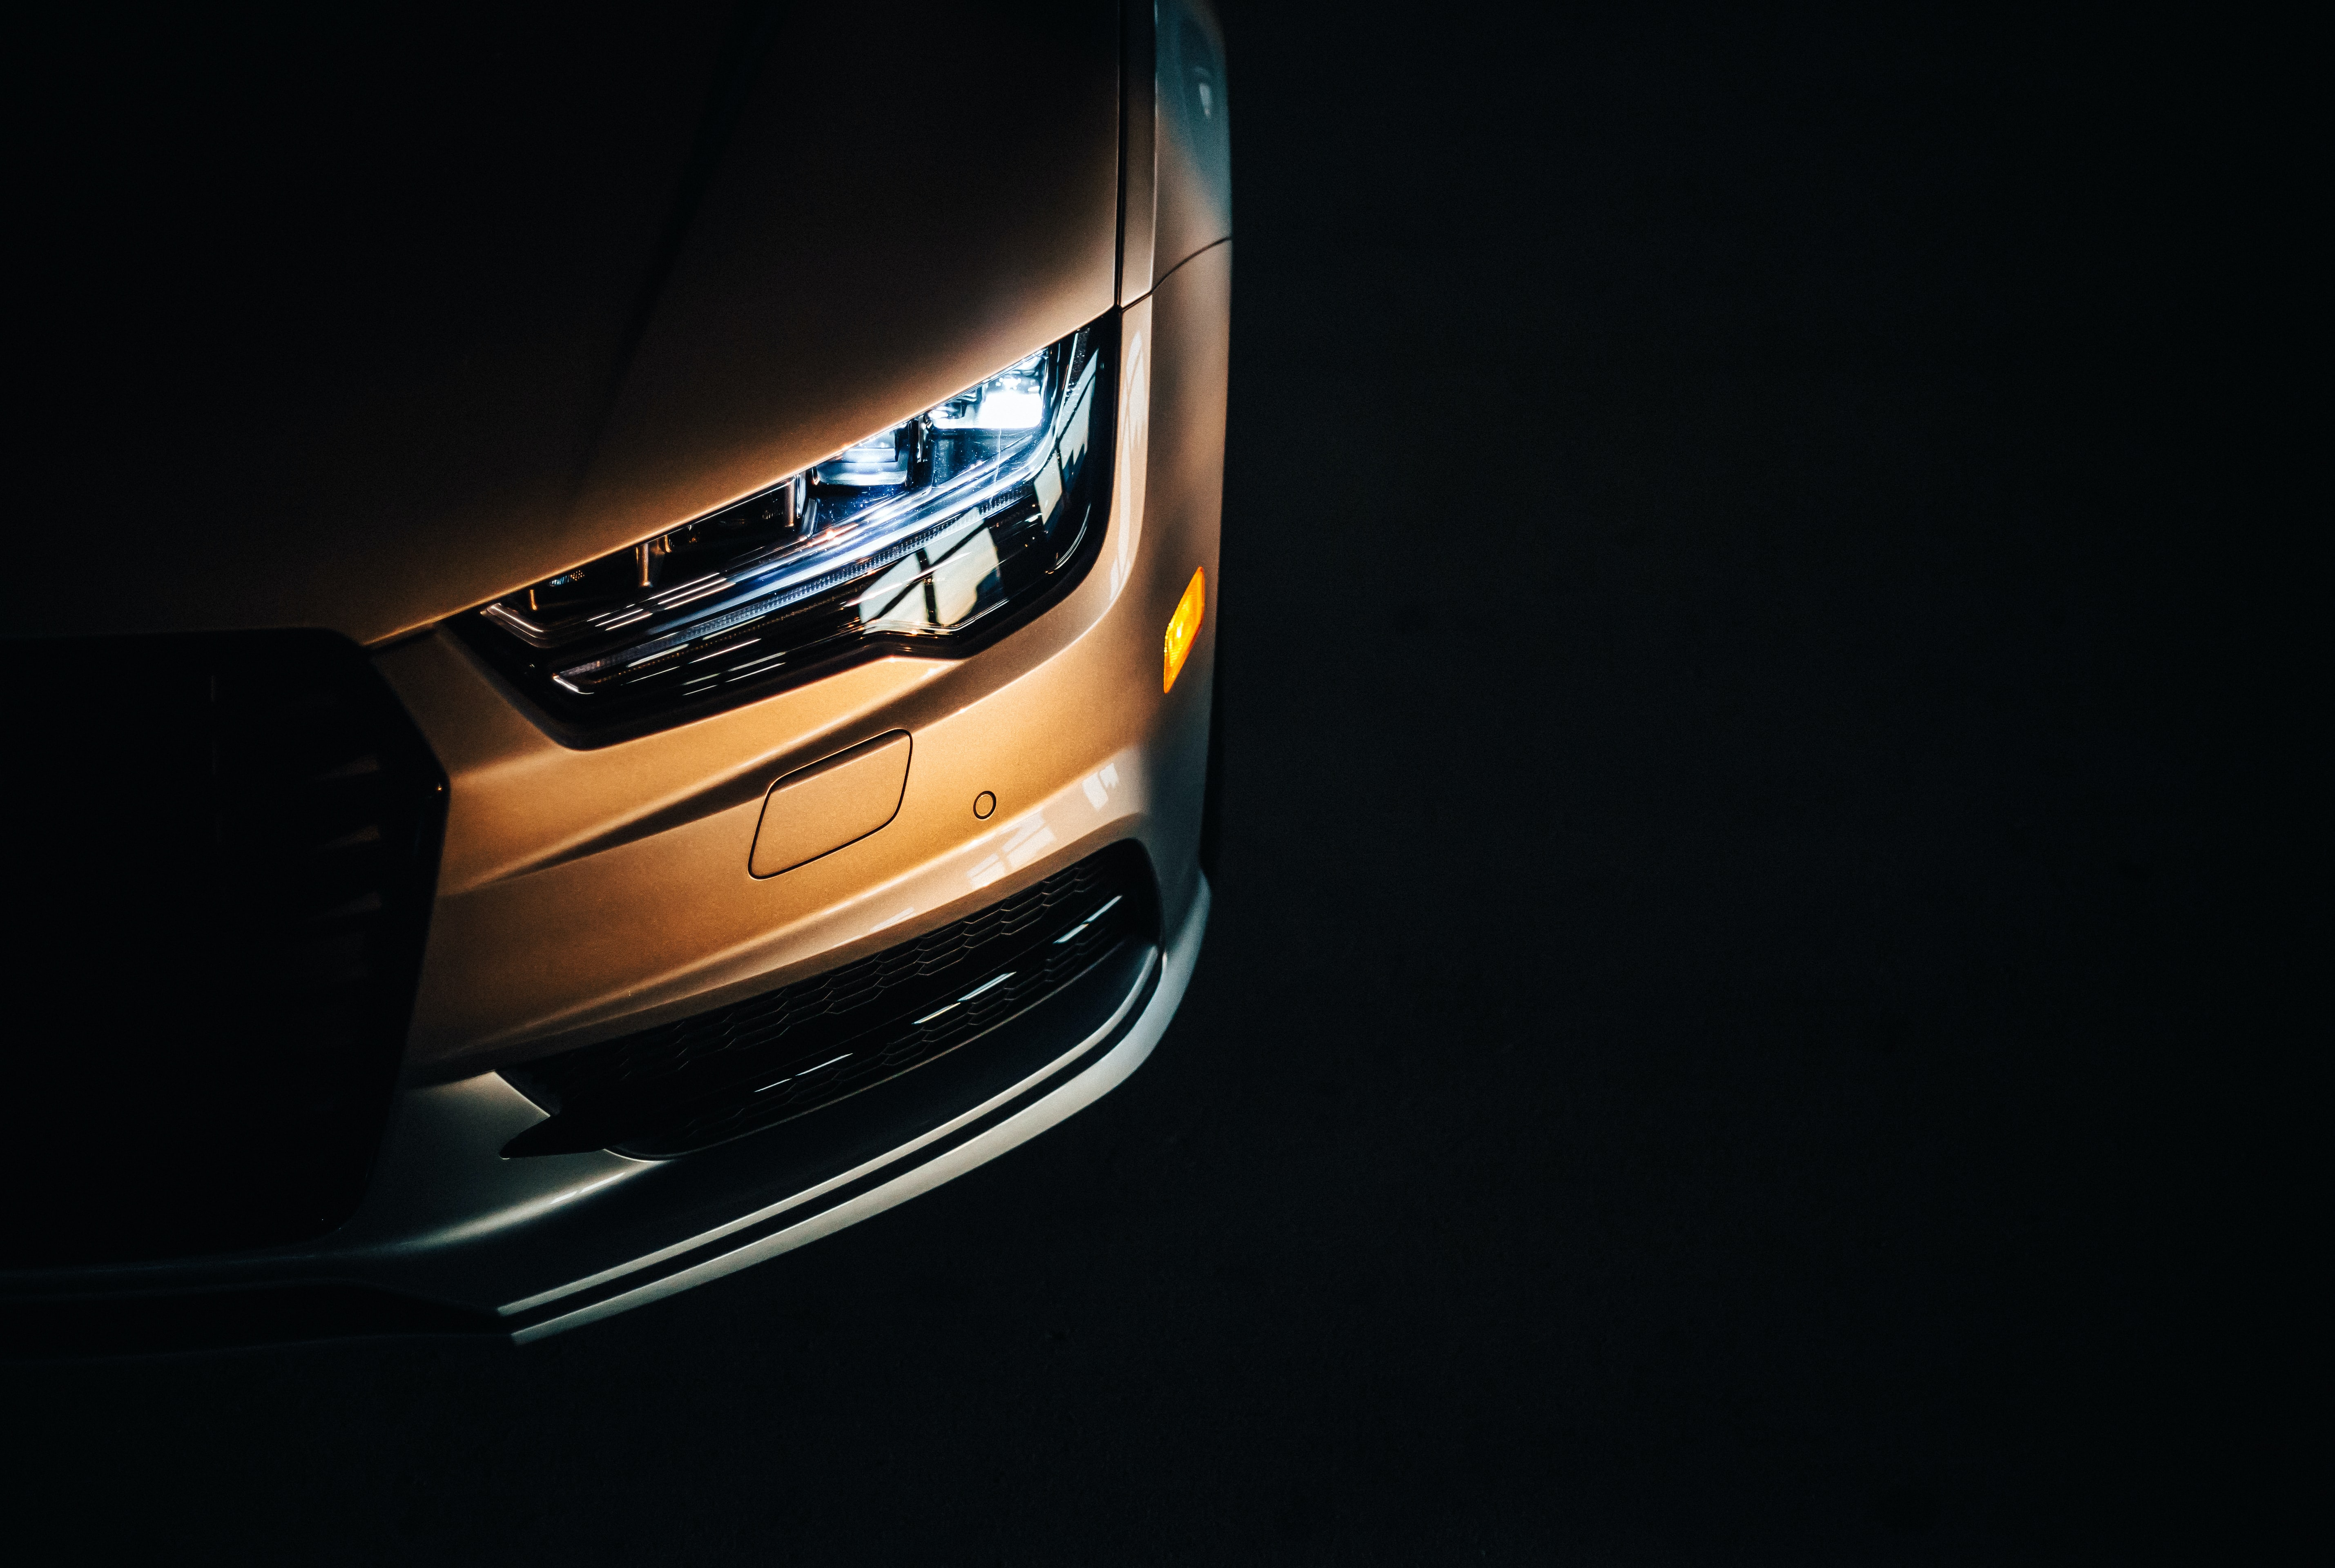 unpaired headlight with black background